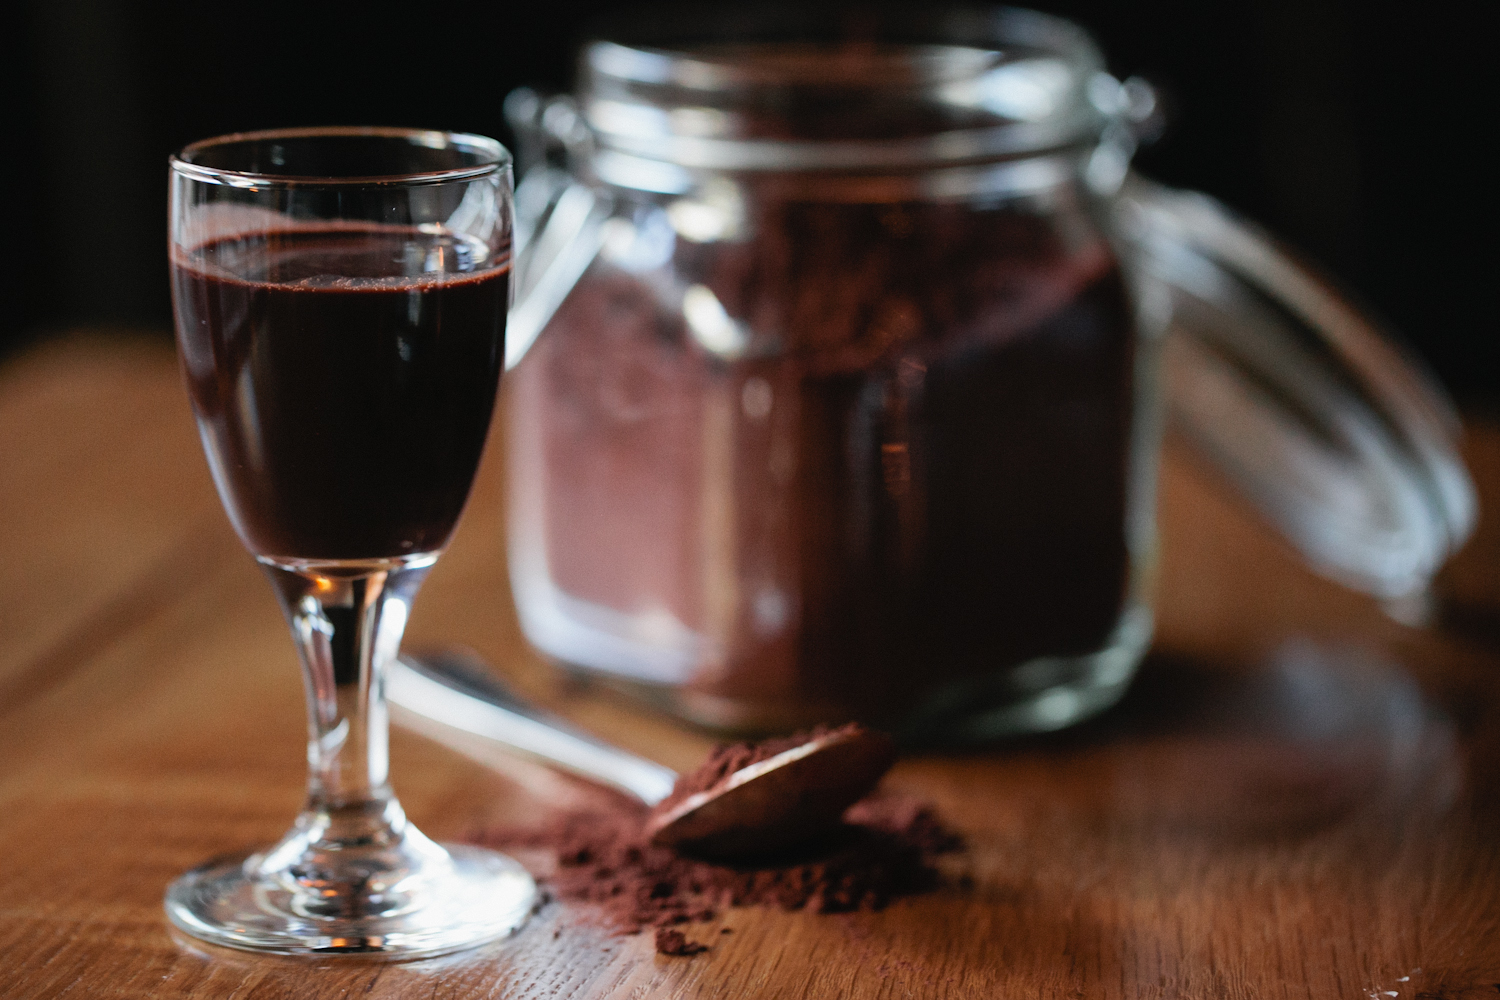 Osteria via Stato's Chocolacello in a glass with a bowl of fresh cocoa powder behind it